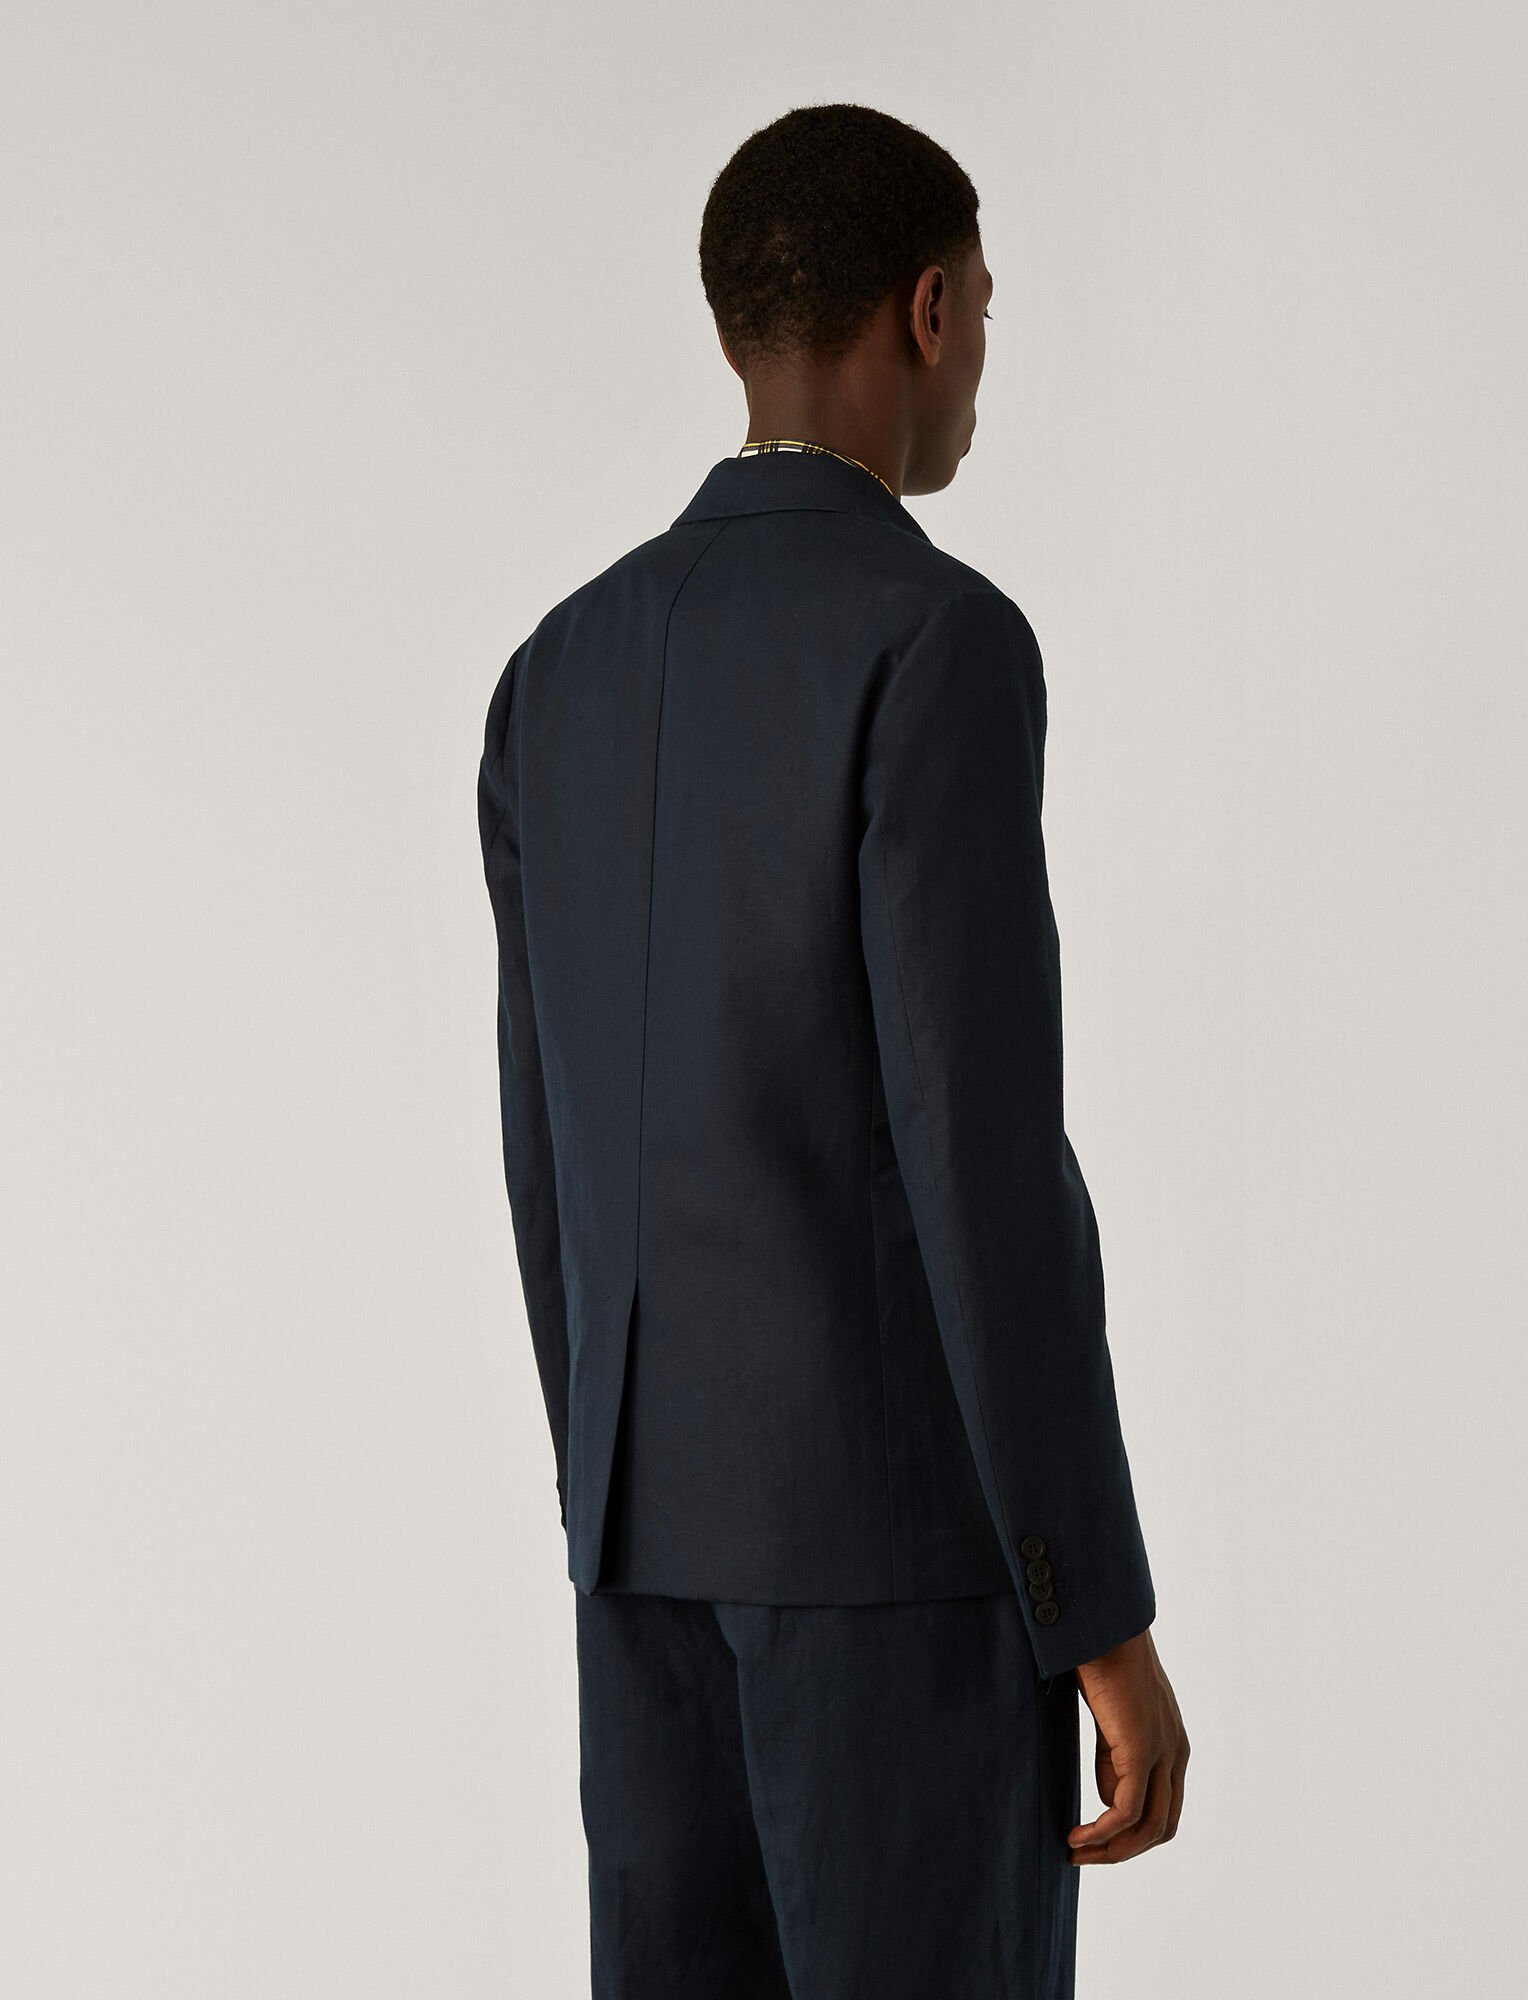 Joseph, Cassis Linen Cotton Blend Jacket, in NAVY